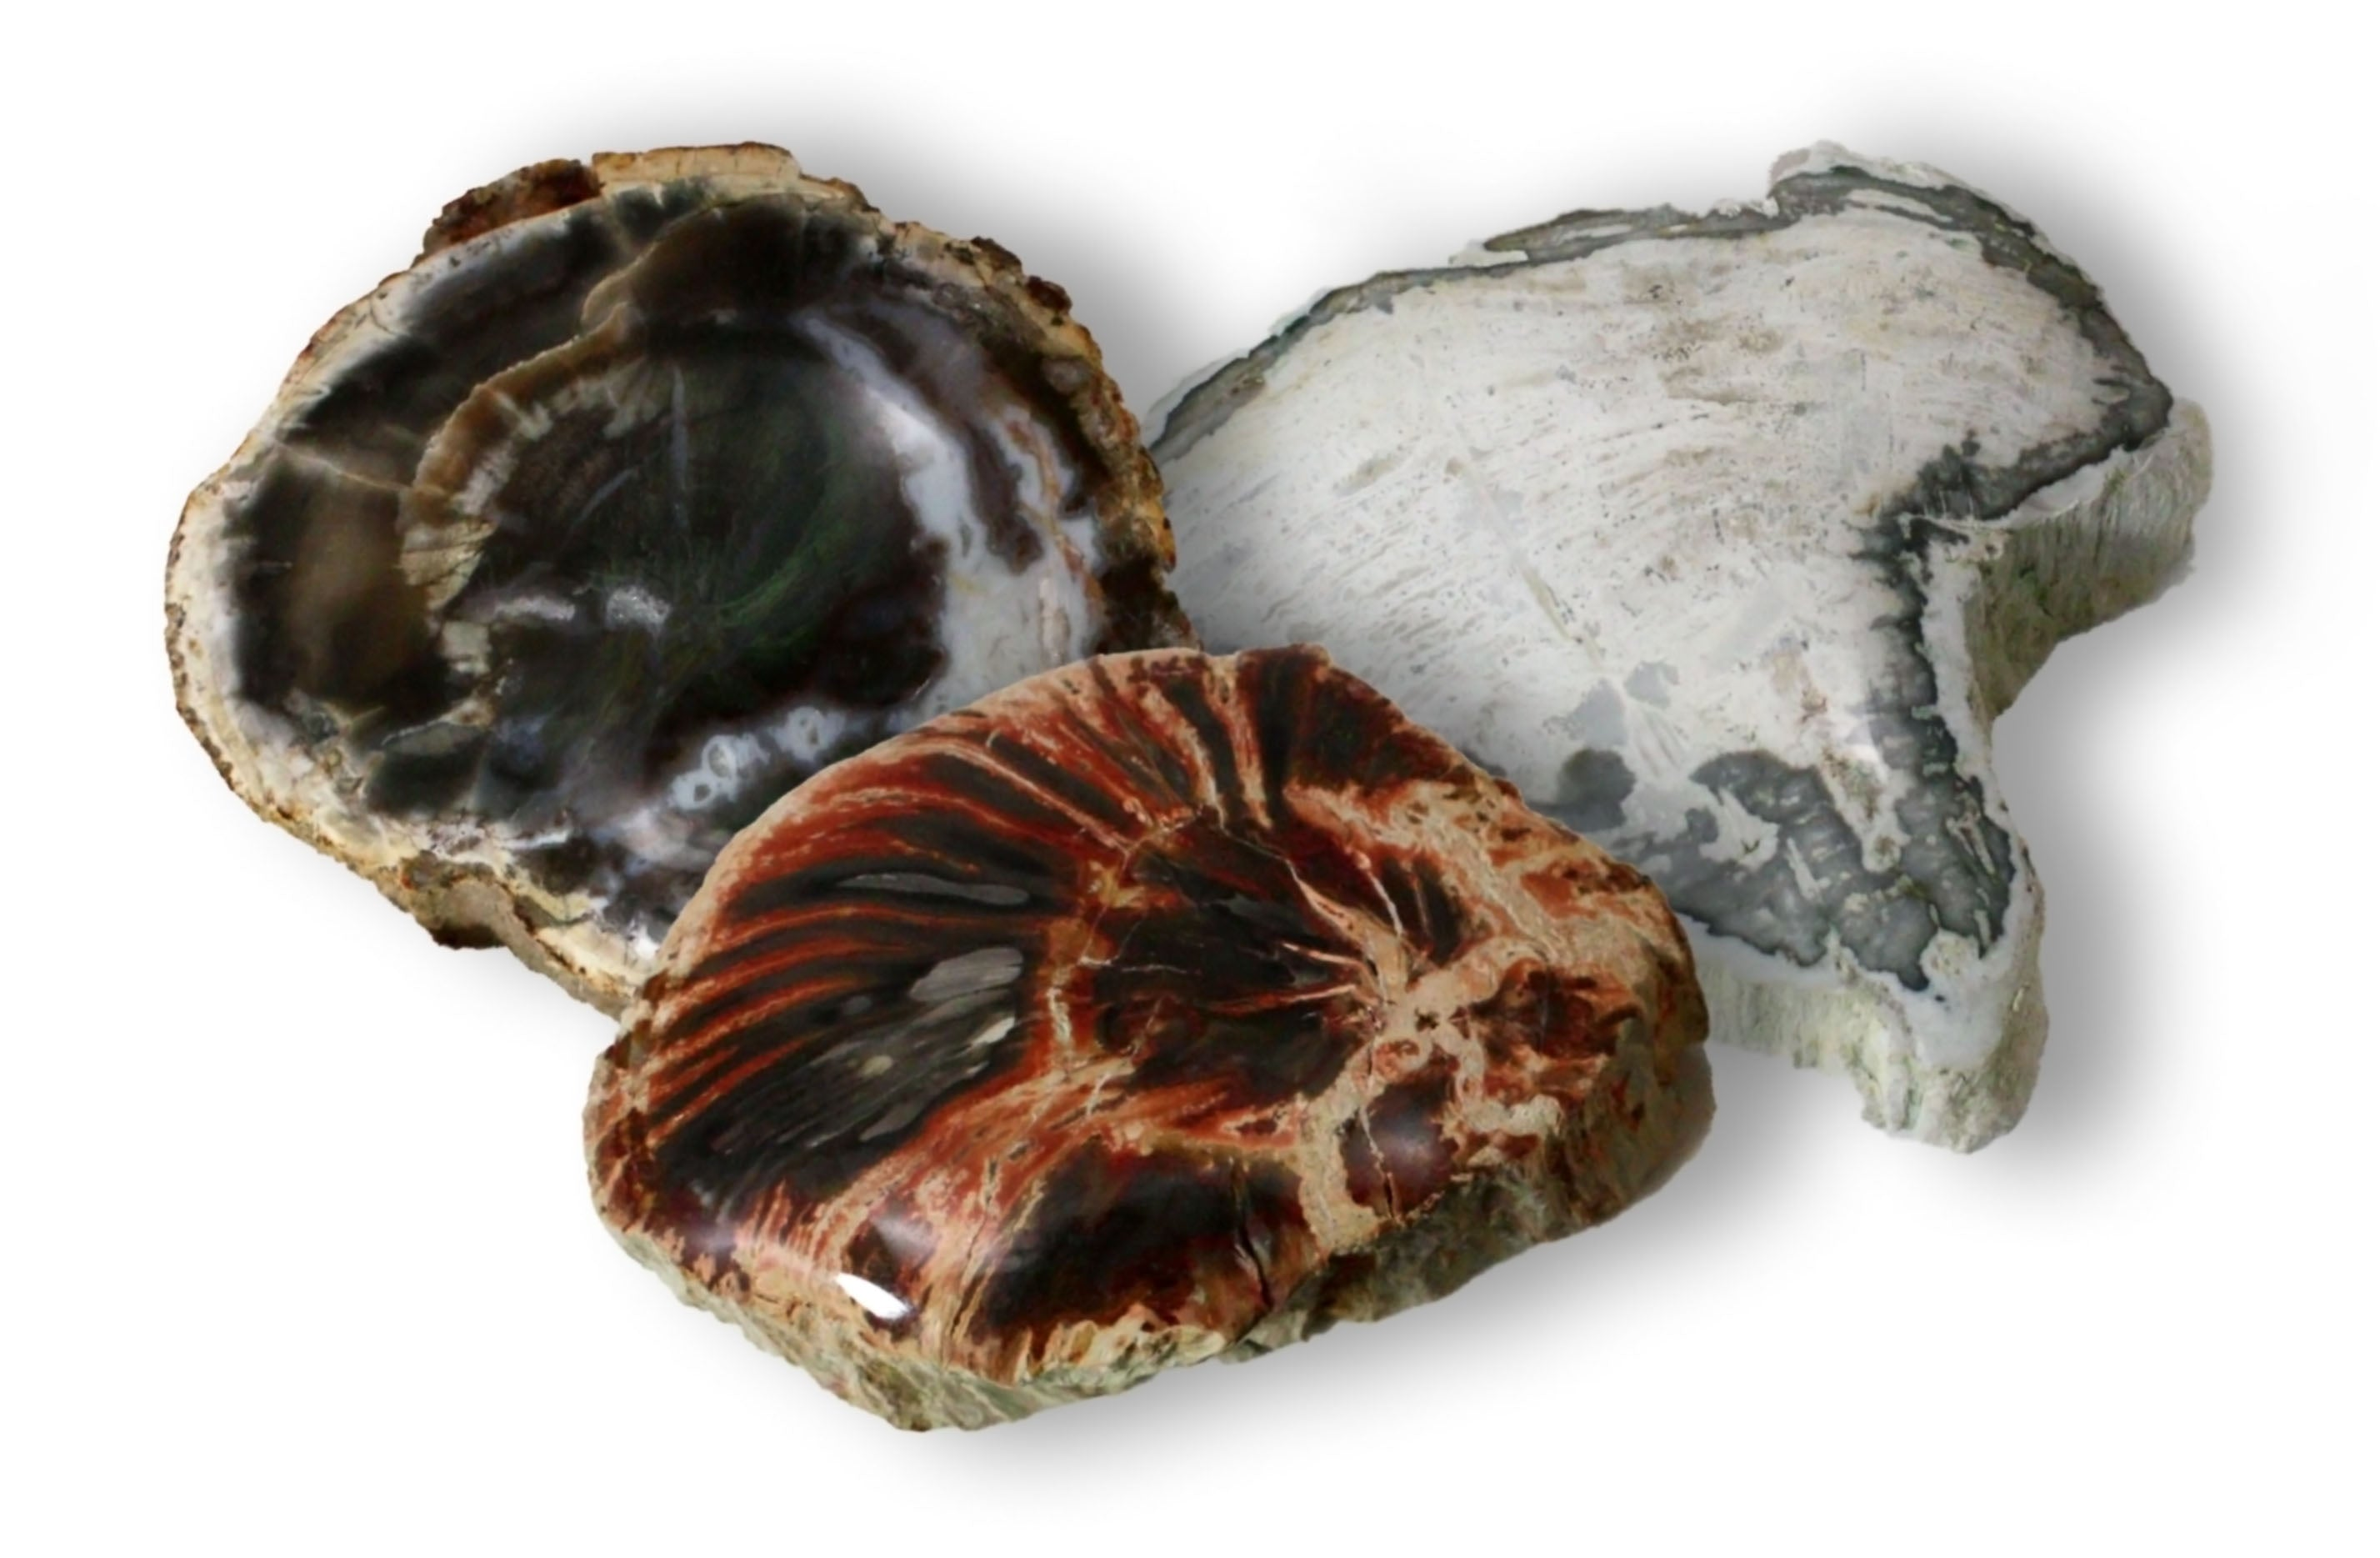 Petrified Wood Branch Cross Section w Polished End - 2.5 to 3 Inches w Info Card